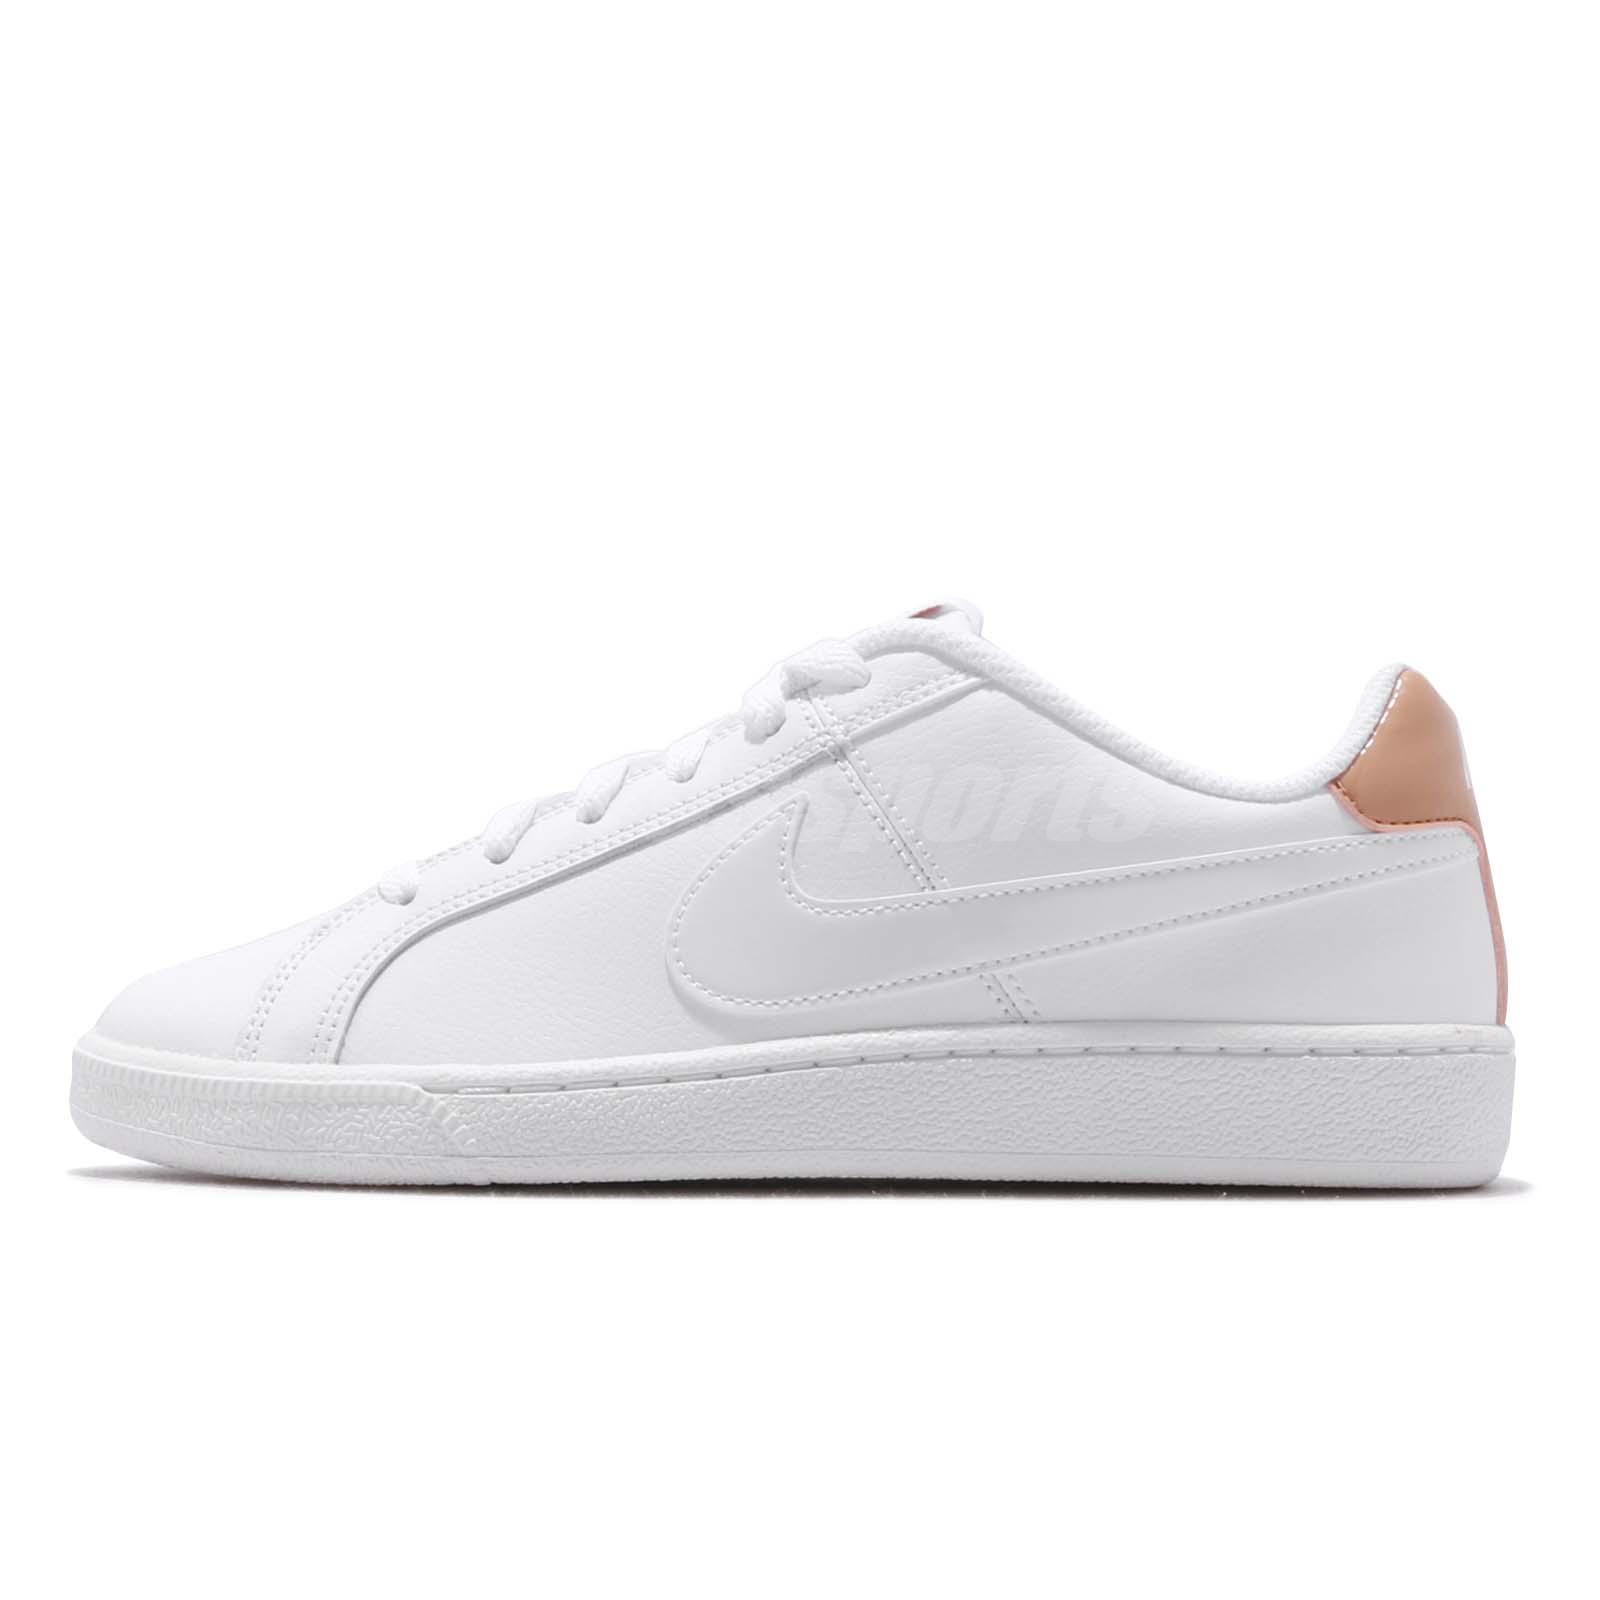 06d3cd4268 Nike Wmns Court Royale White Rose Gold Women Casual Shoes Sneakers  749867-116